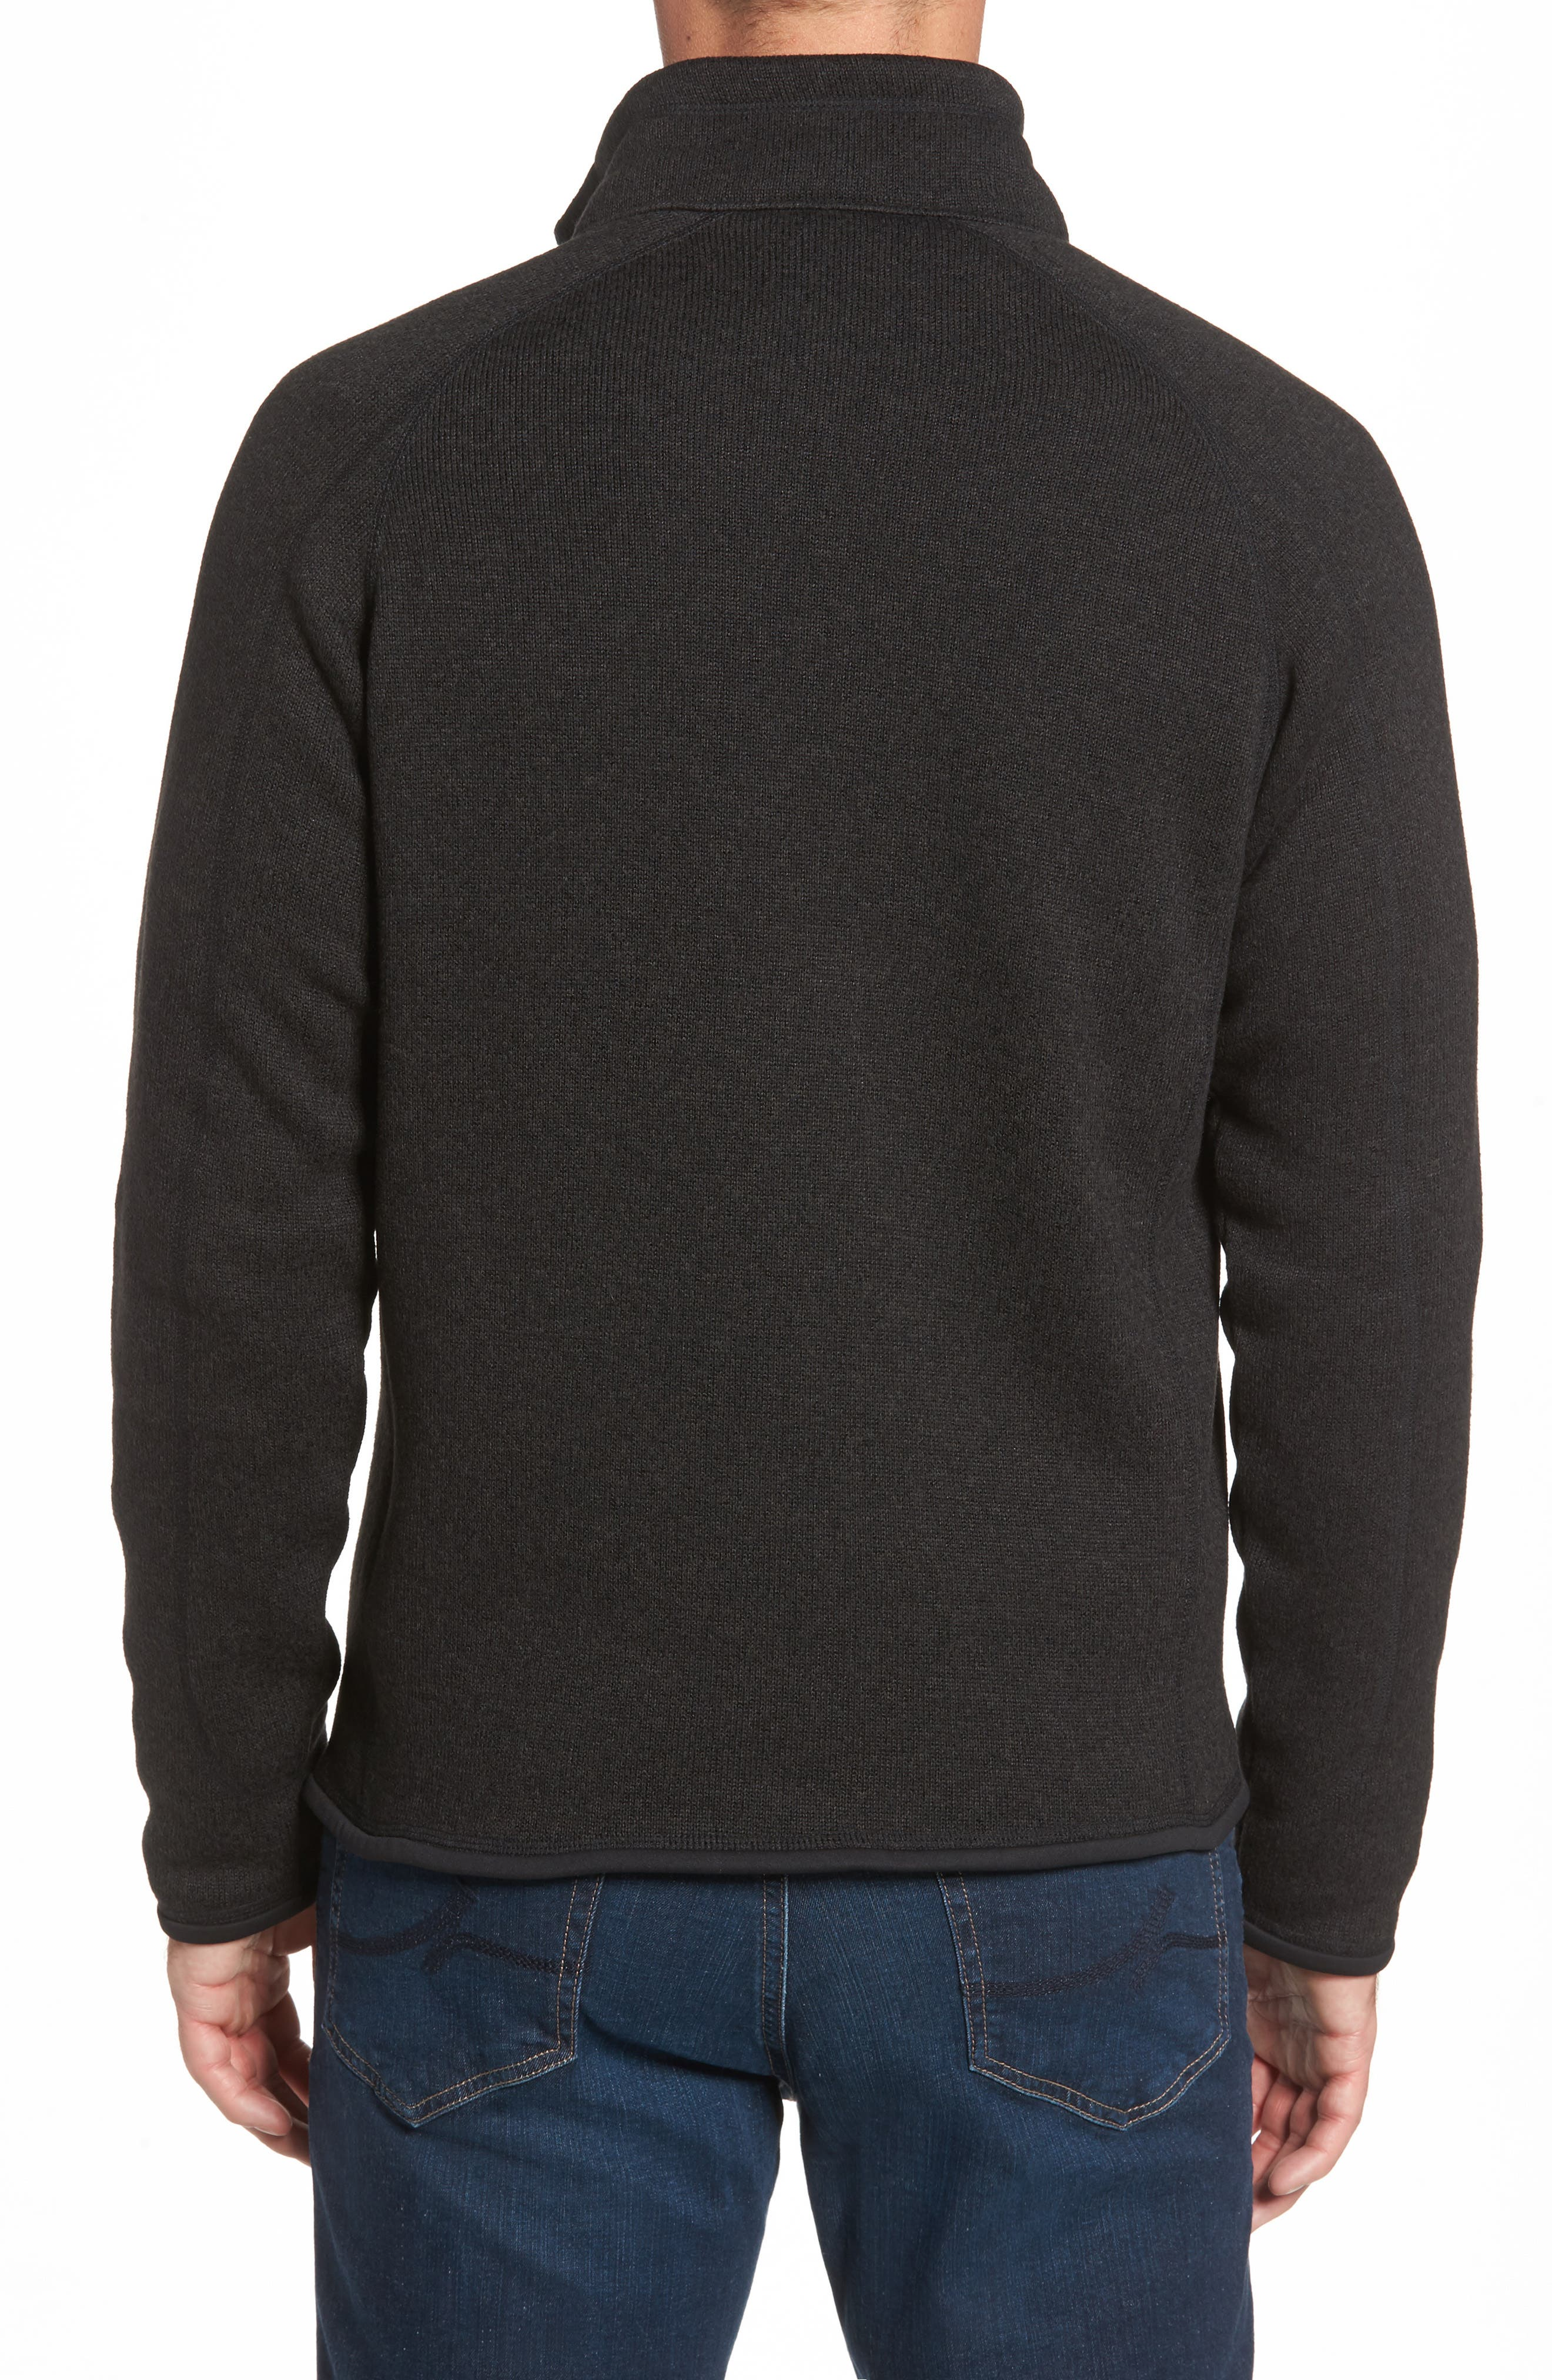 Better Sweater Zip Front Jacket,                             Alternate thumbnail 2, color,                             BLACK